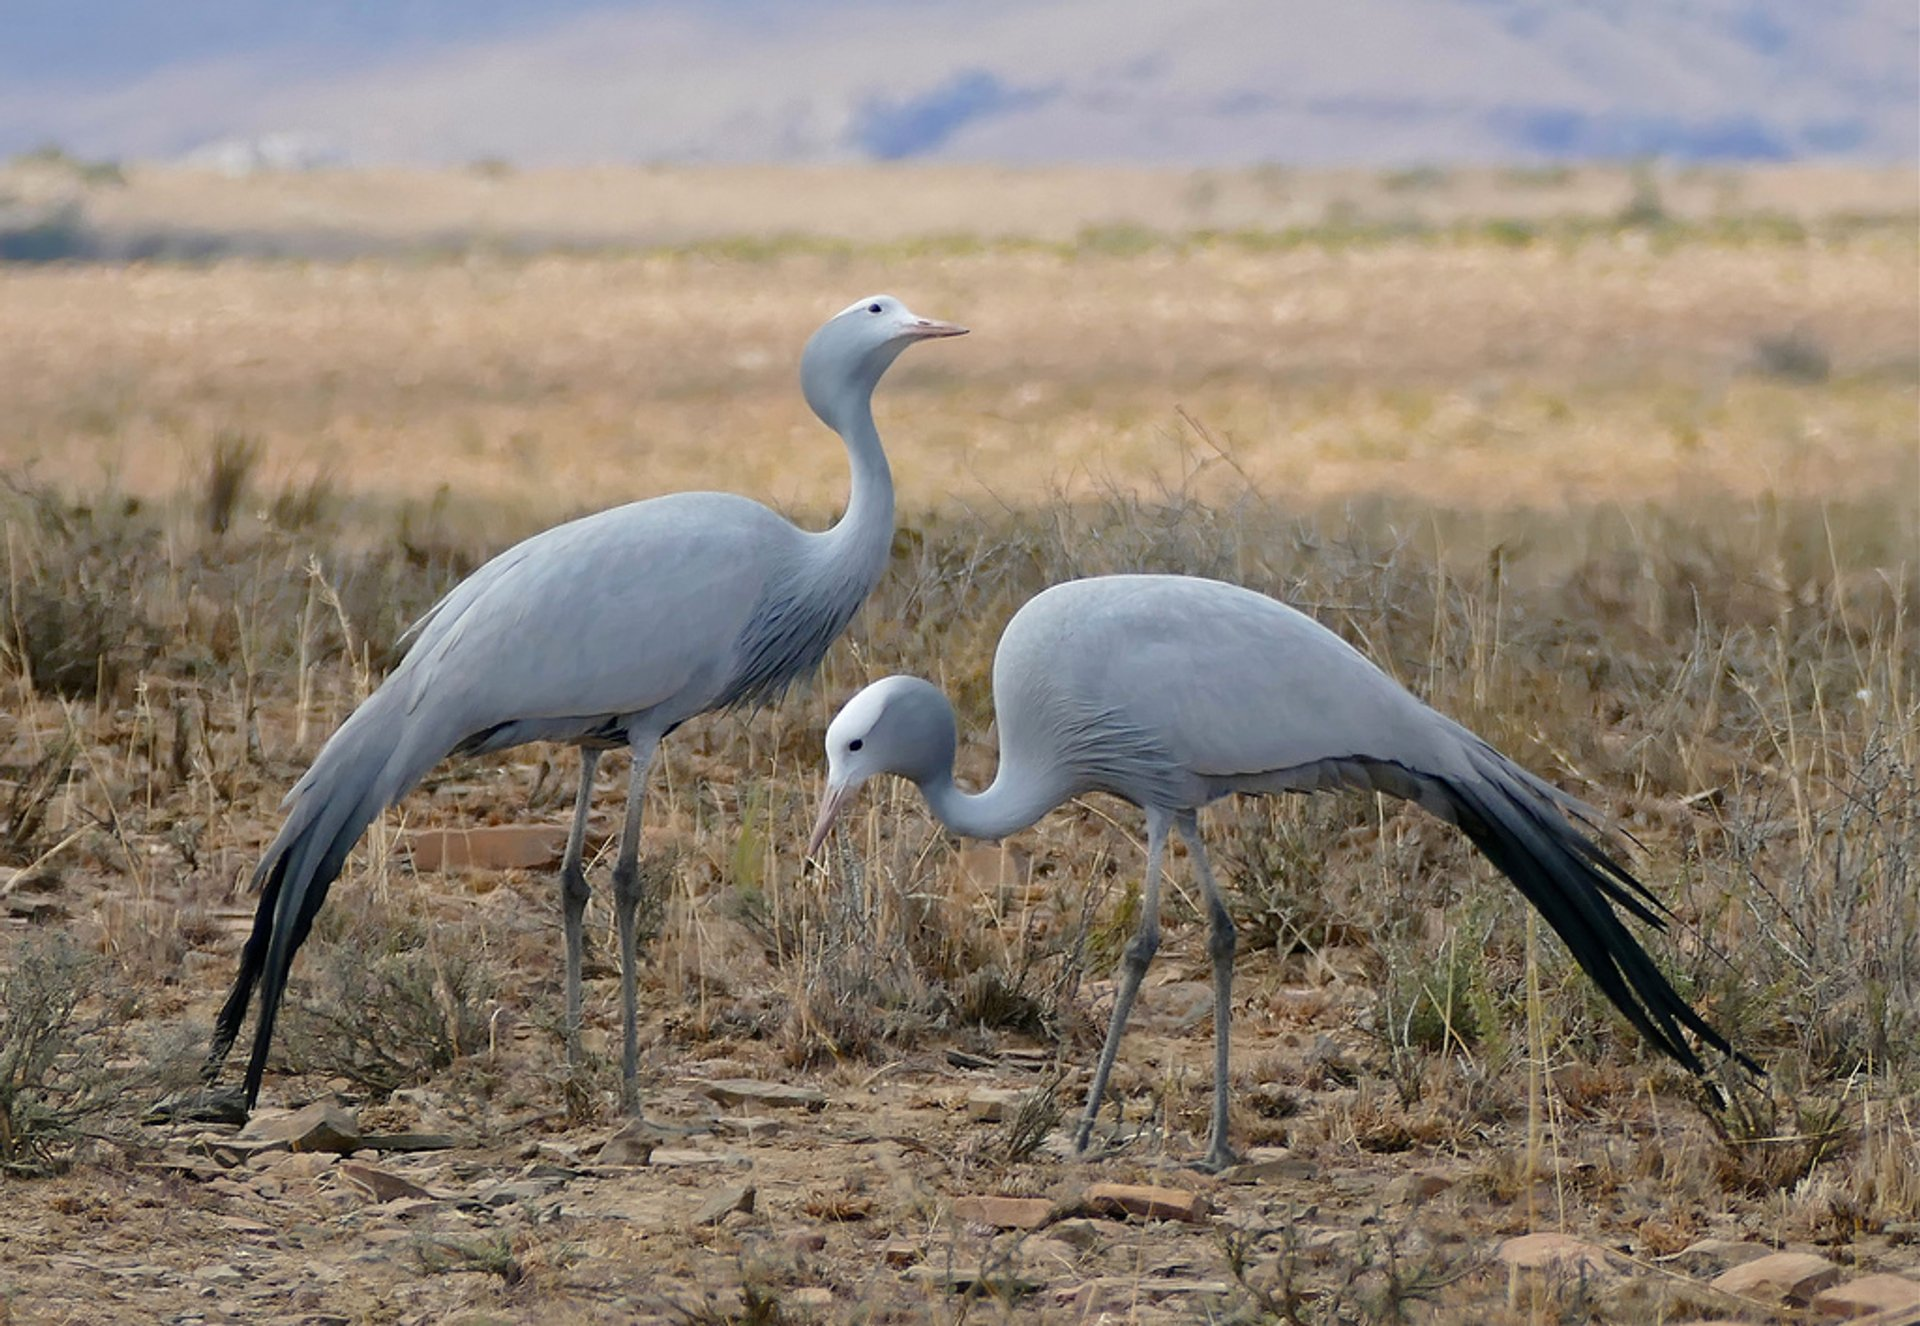 Blue cranes in Mountain Zebra NP, Eastern Cape, South Africa 2019